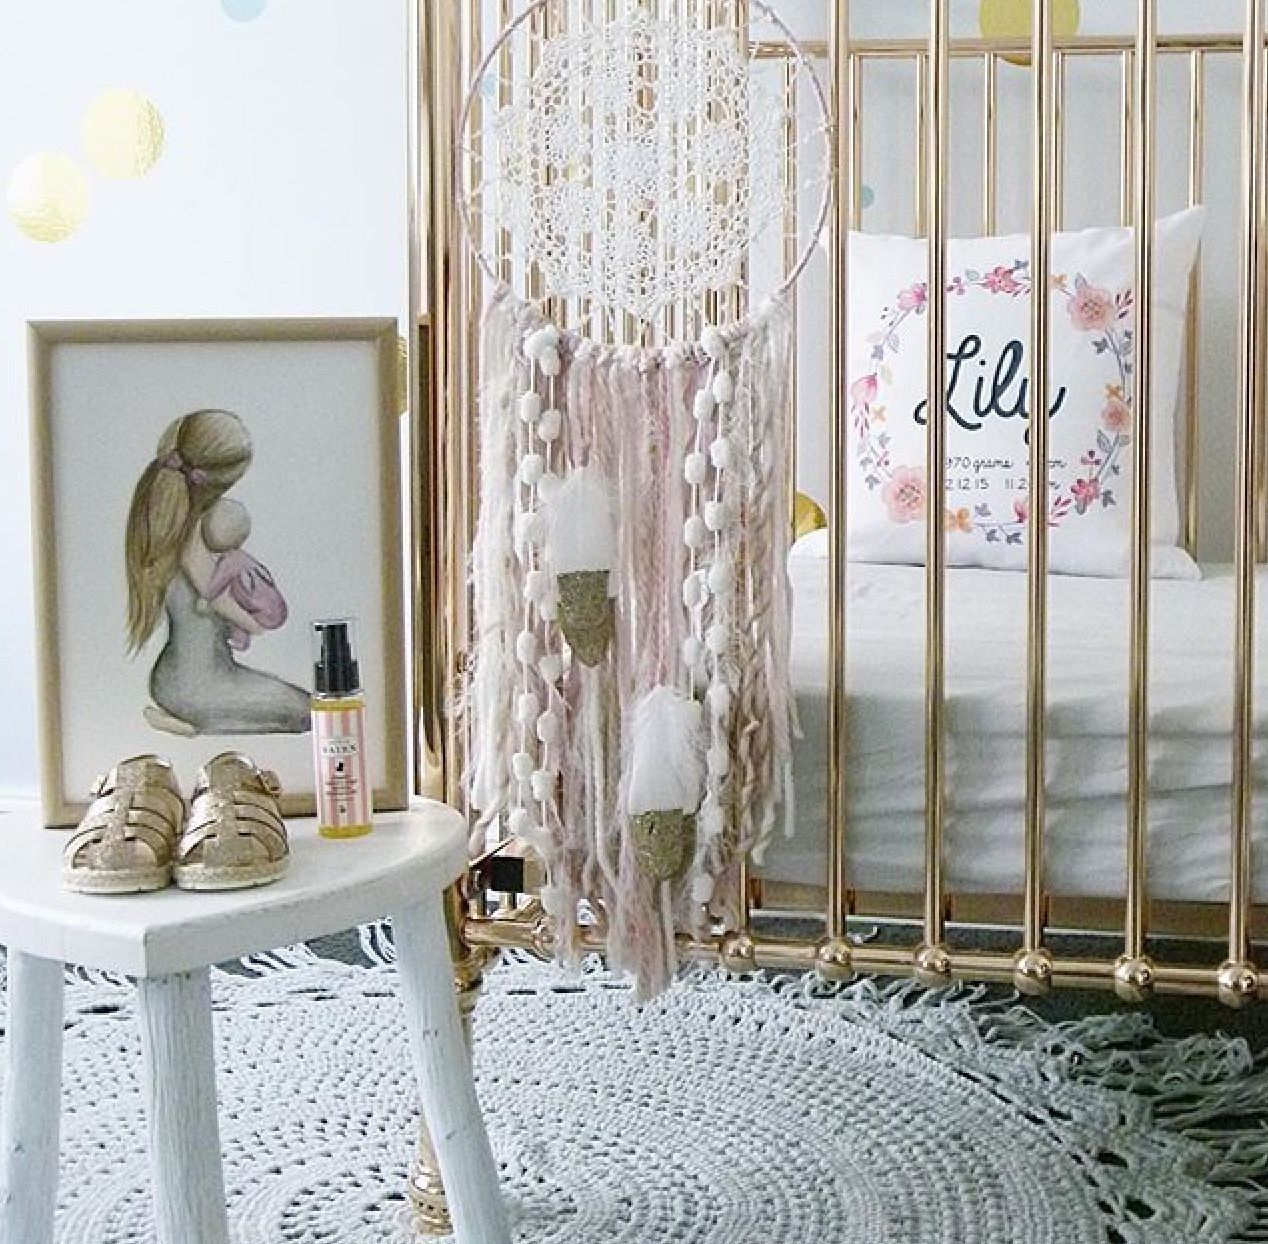 Rugs For Children's Rooms Handmade Crochet Rugs And Beautiful Children 39s Decor